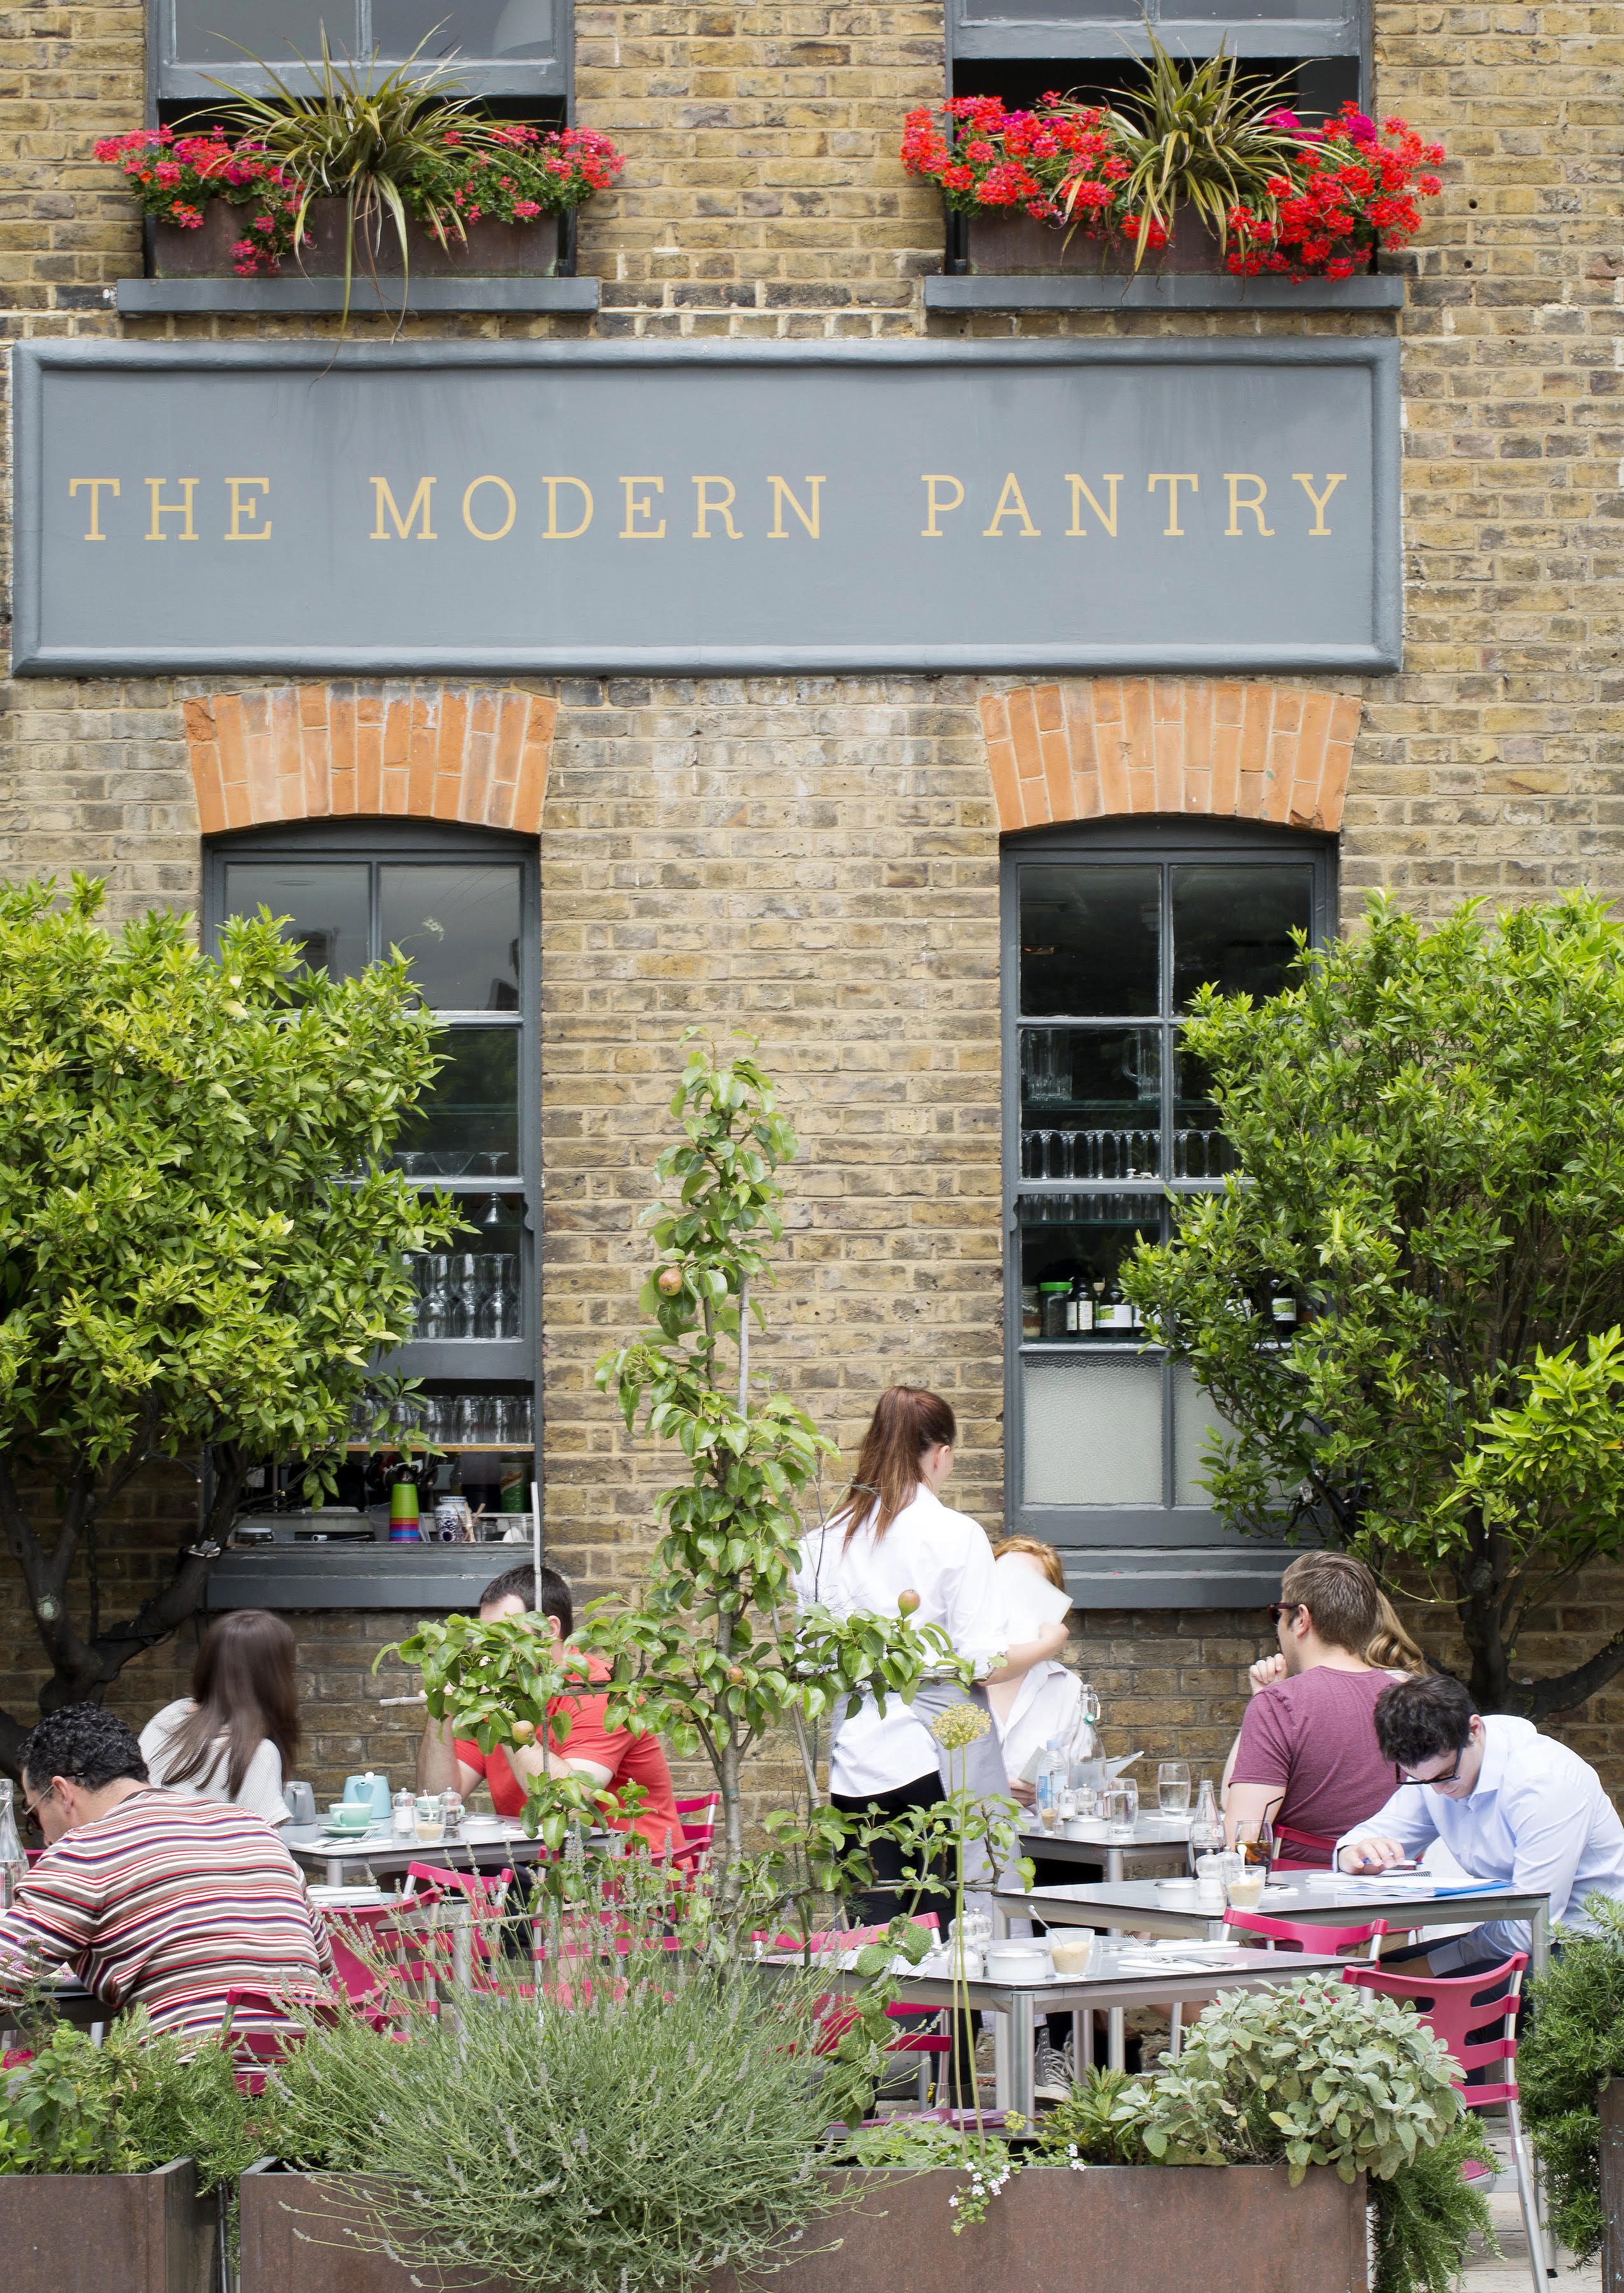 The Modern Pantry in Clerkenwell